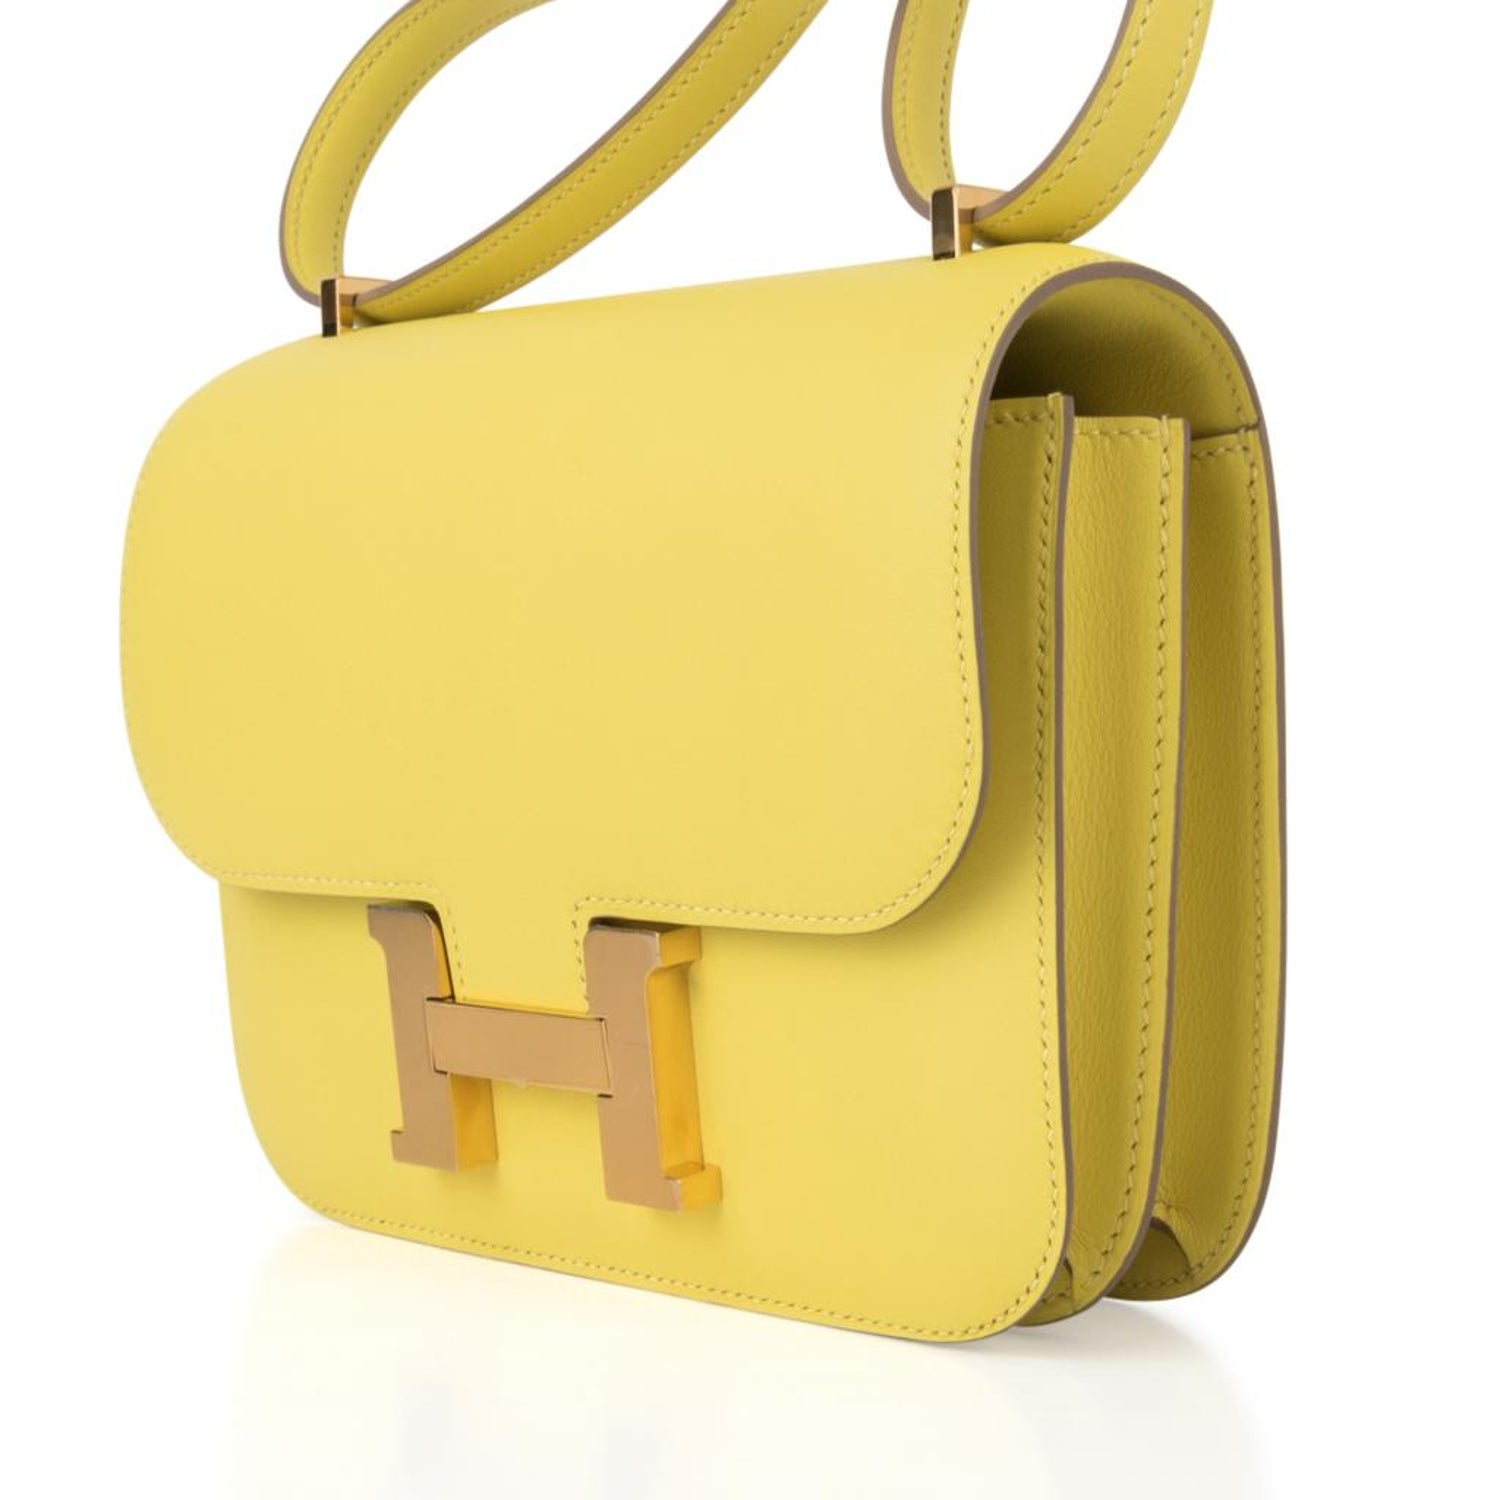 491891d35ead Hermes Constance 18 Bag Lime Swift Gold Hardware Rare For Sale at 1stdibs